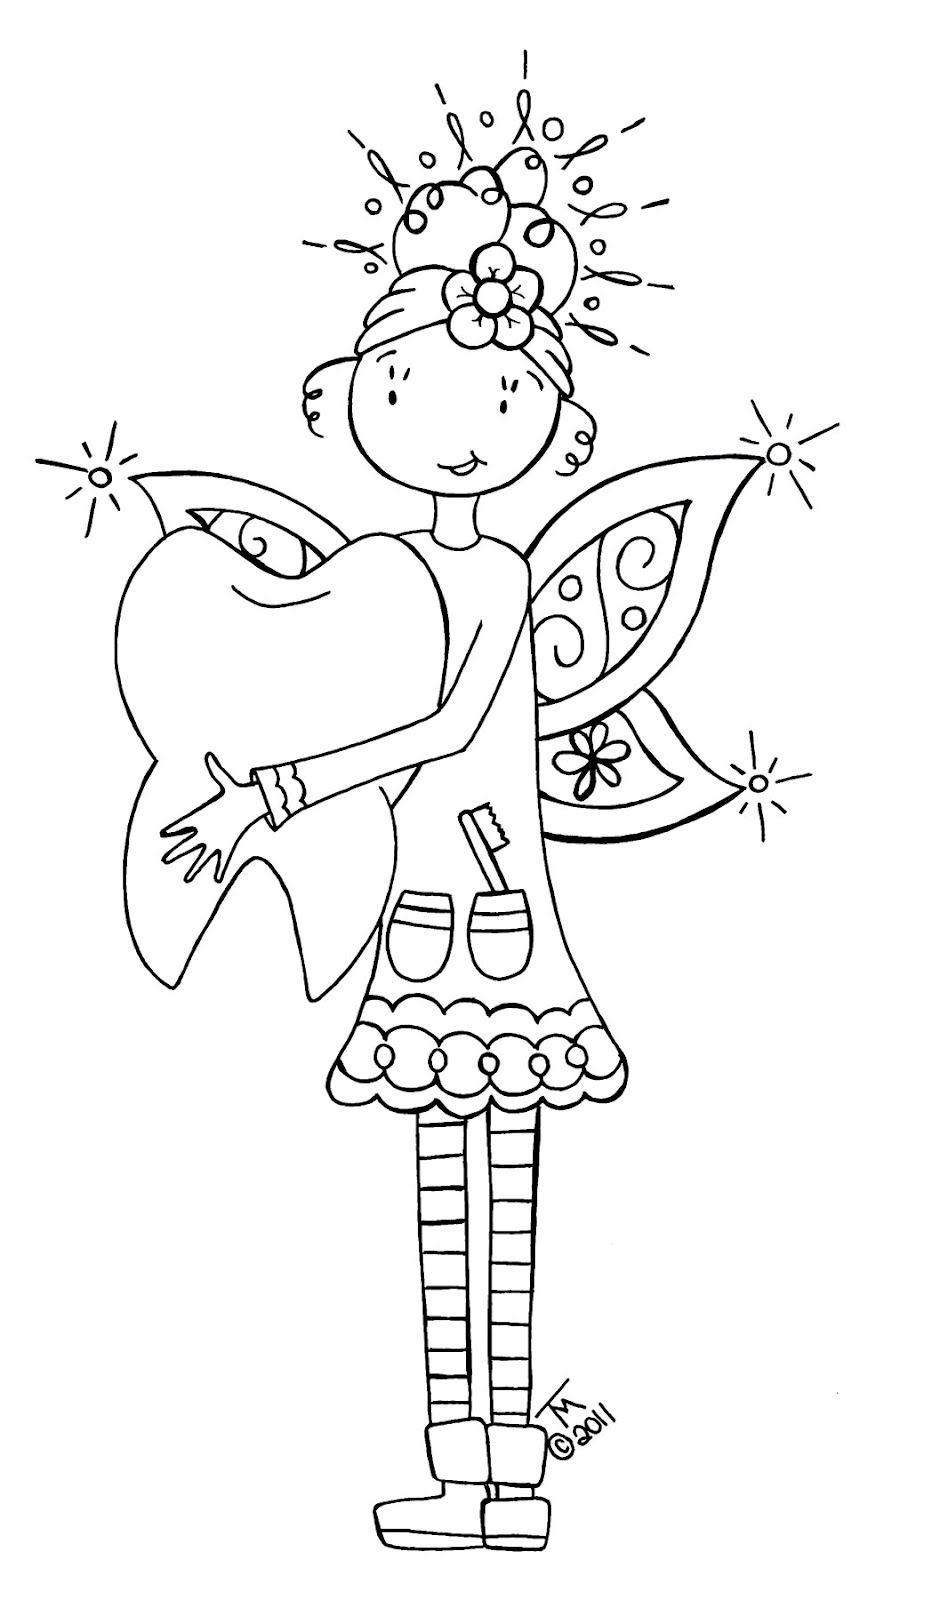 TOOTH FAIRY, colour it, sew it, trace it, etc. free